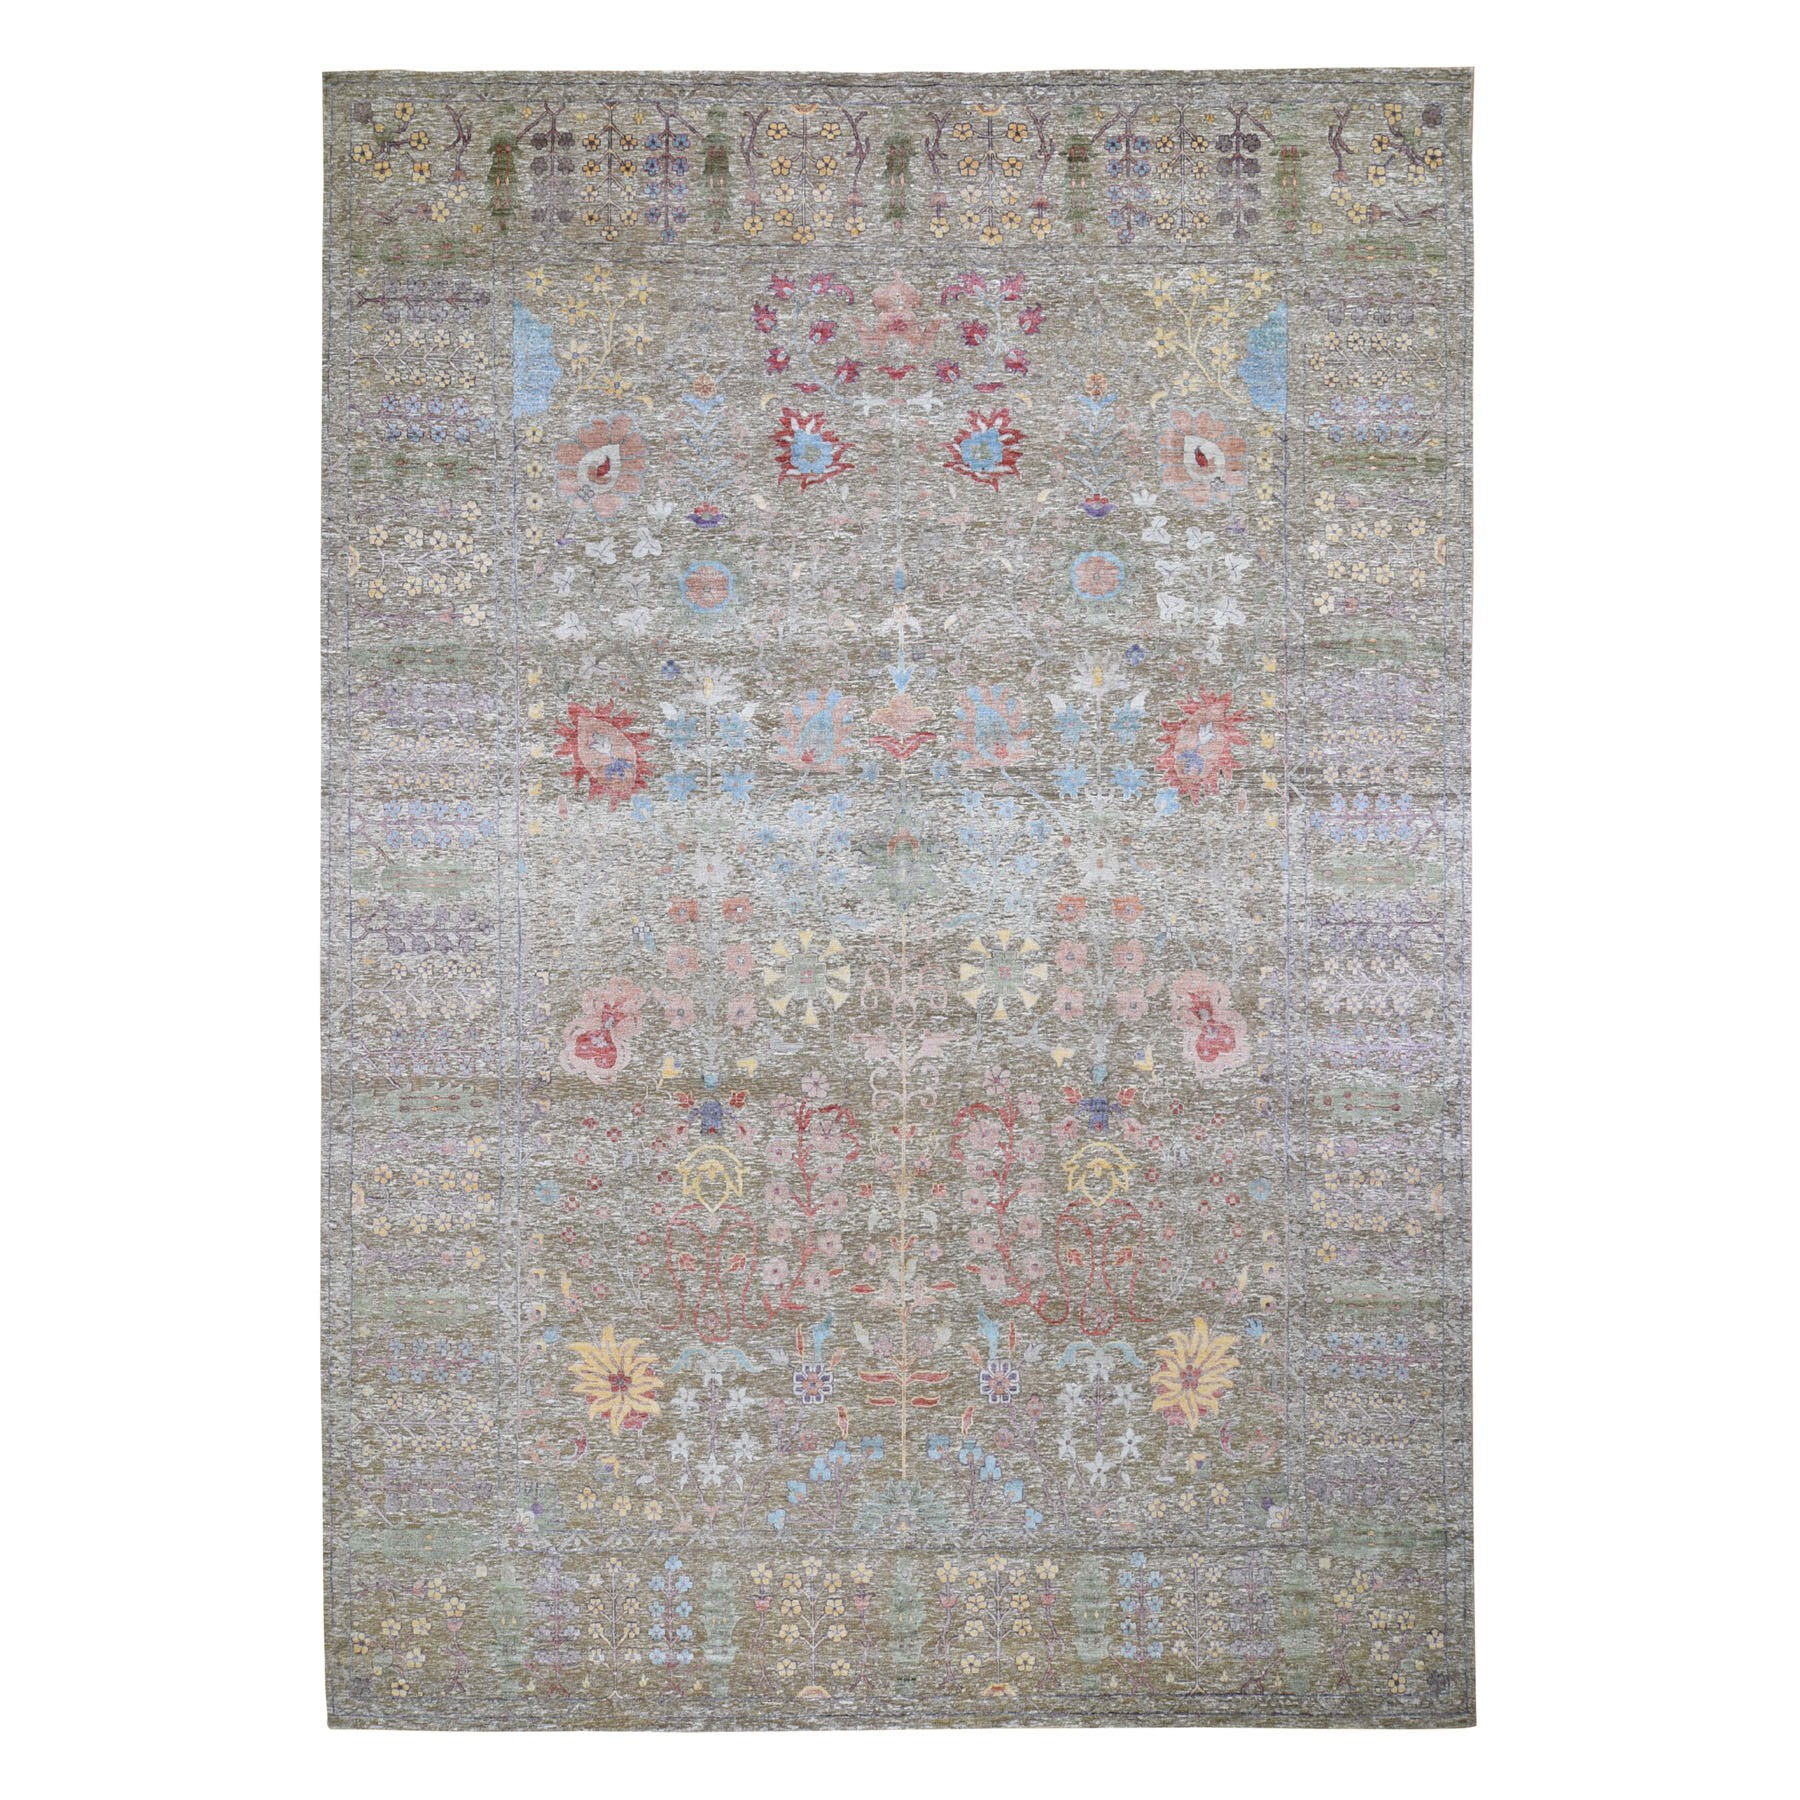 10'x14' Honey Brown Silk With Textured wool vaze Design Hand Knotted Oriental Rug